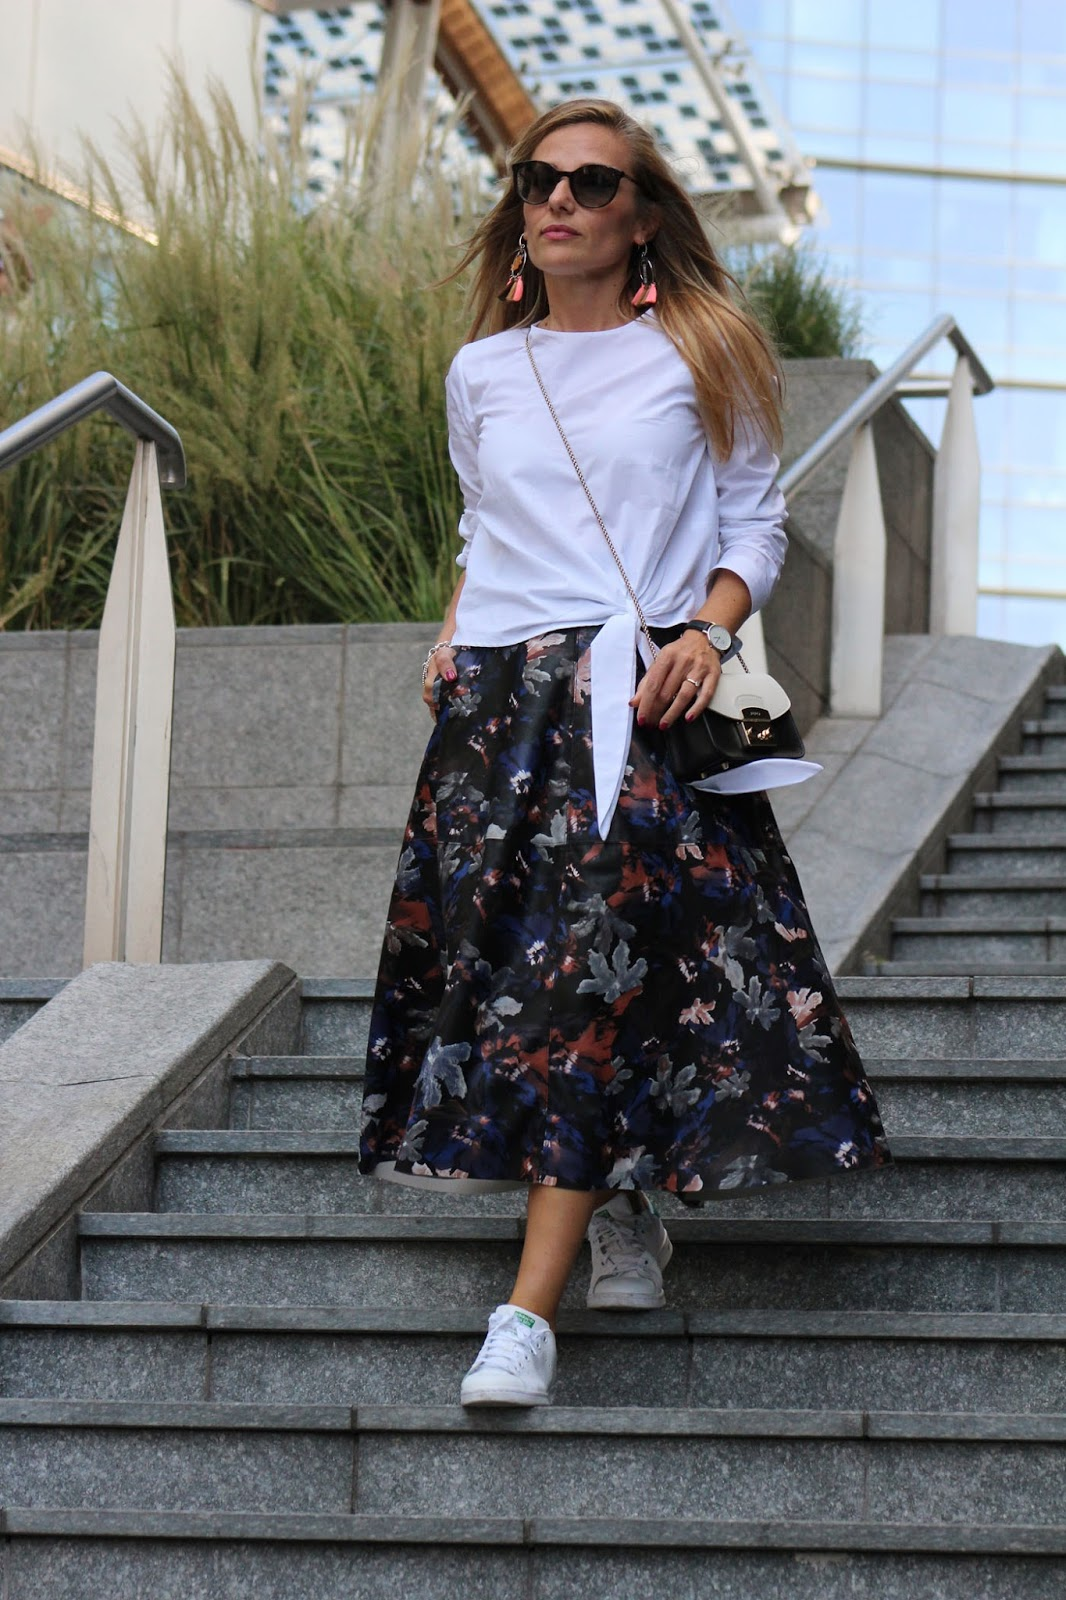 Eniwhere Fashion - Milano Fashion Week - Outfit